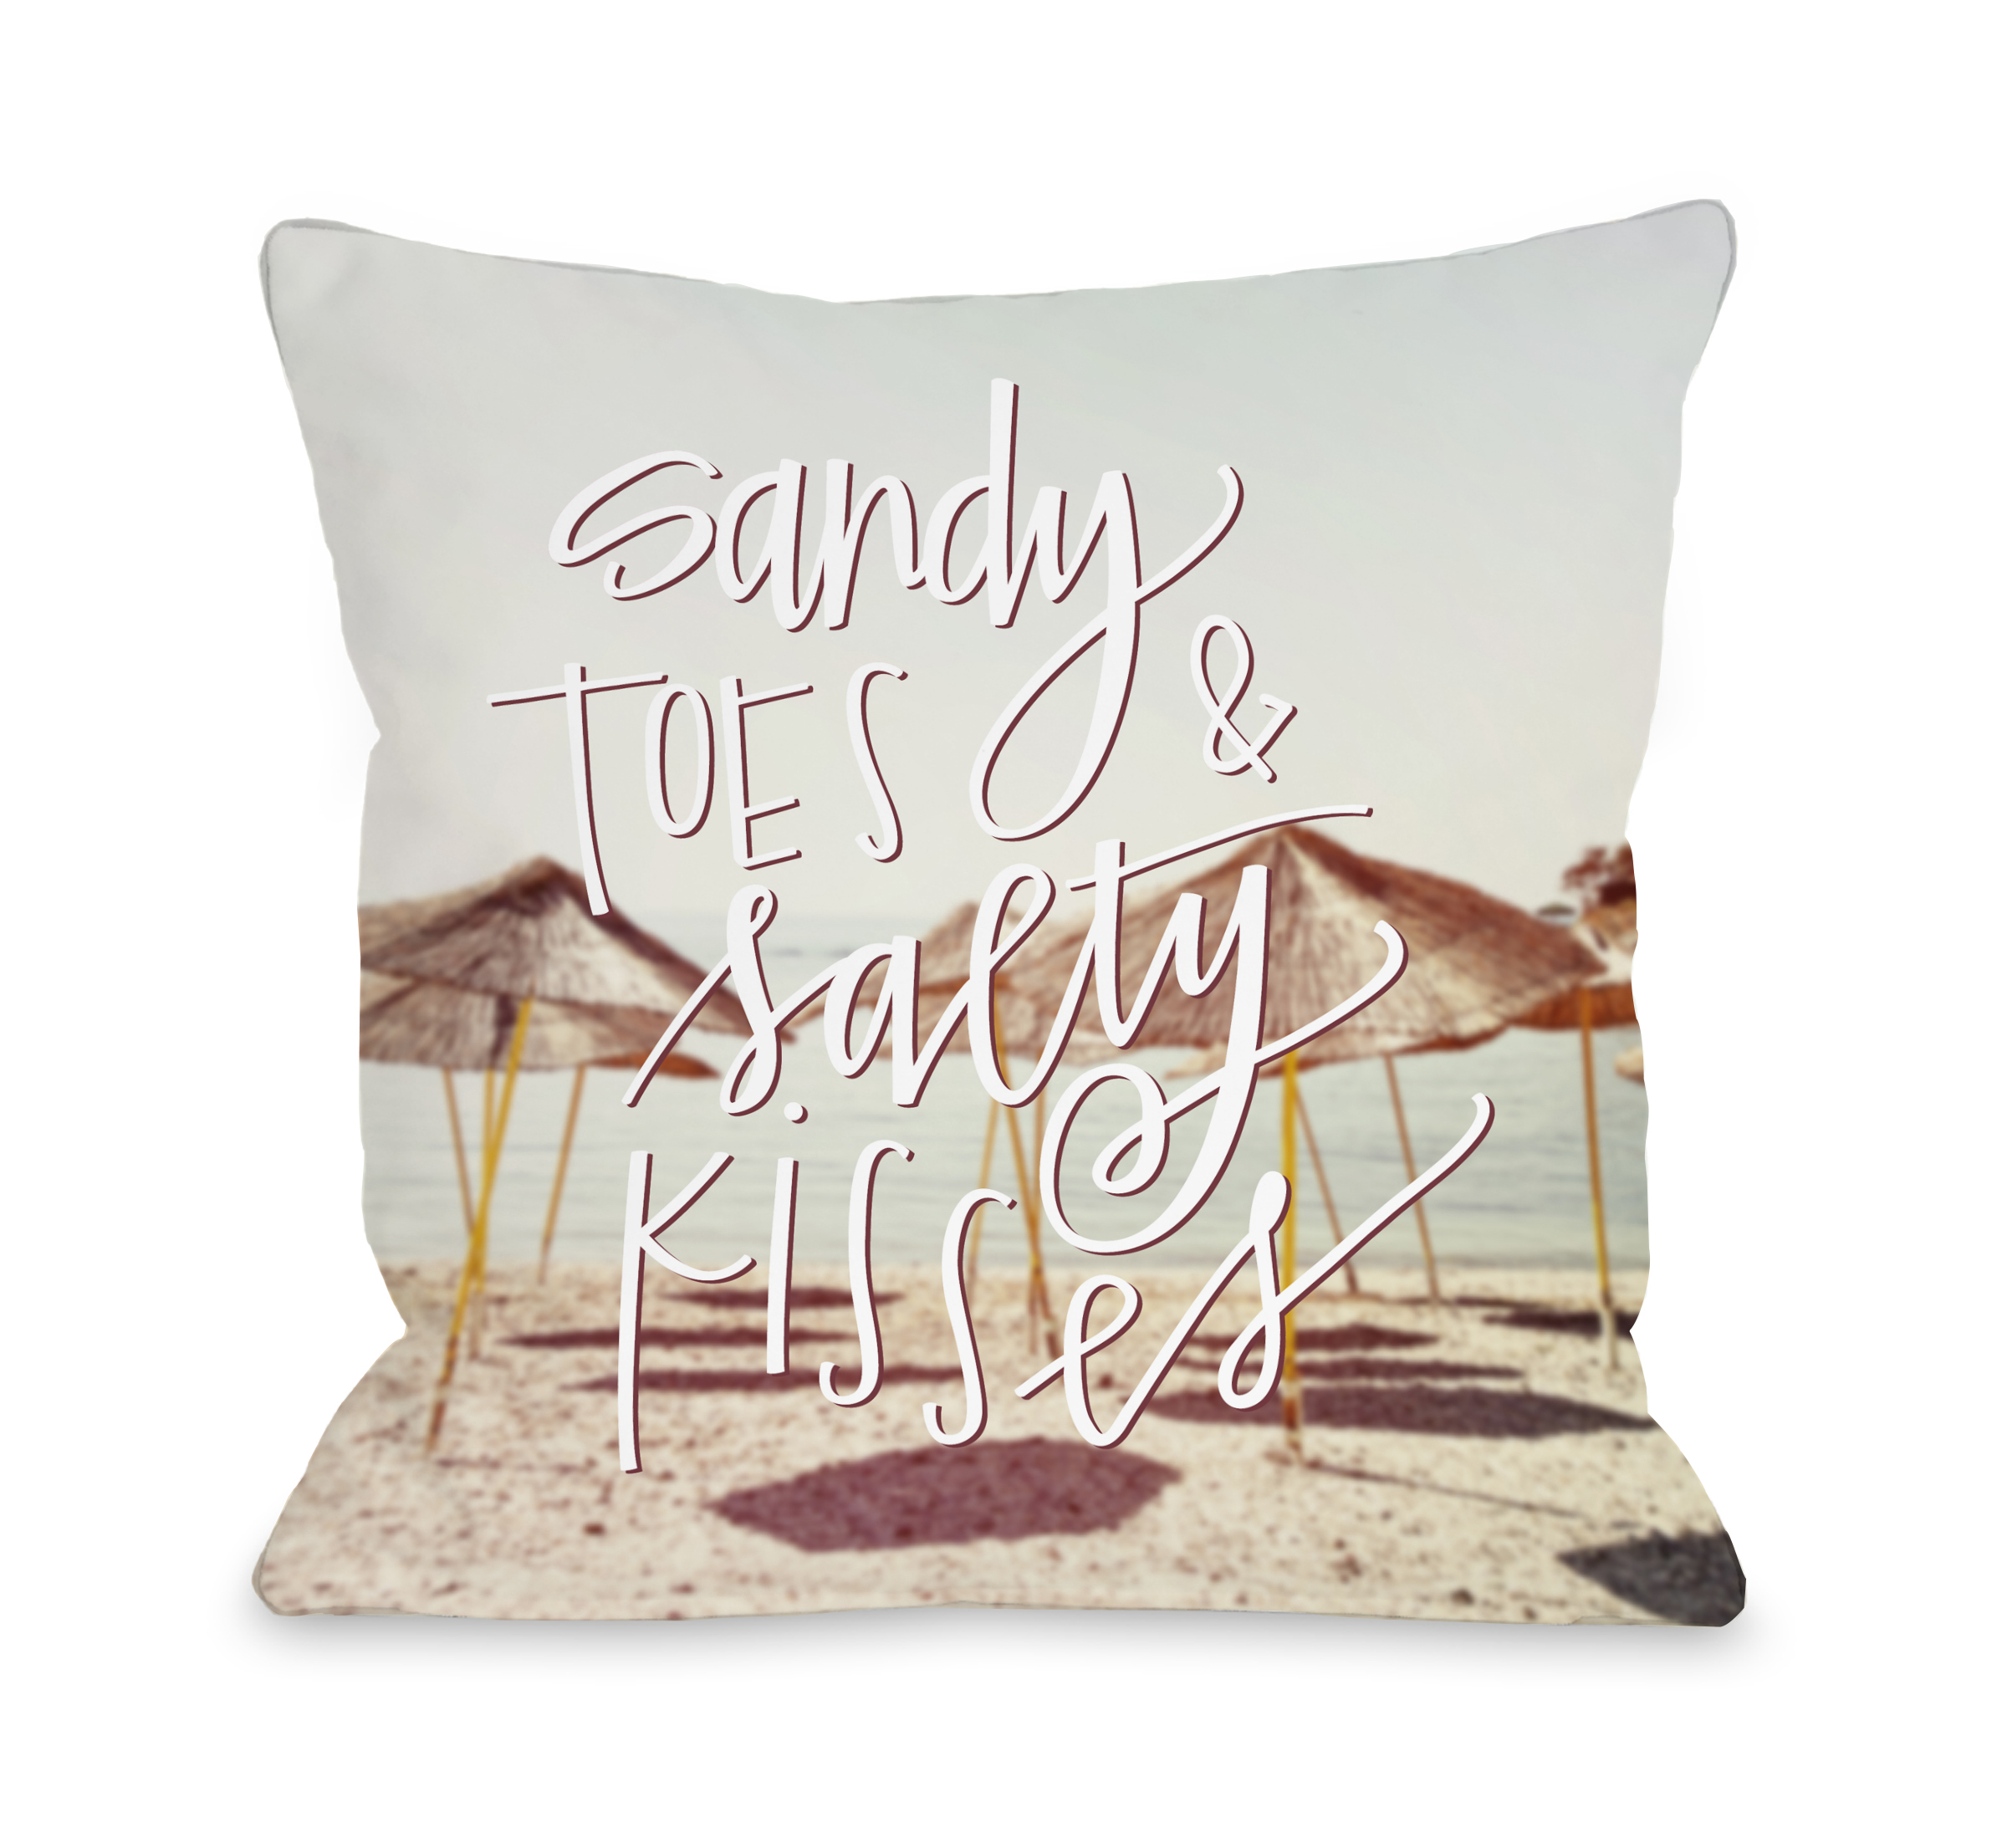 Sandy Toes Salty Kisses - Multi 18x18 Pillow by OBC